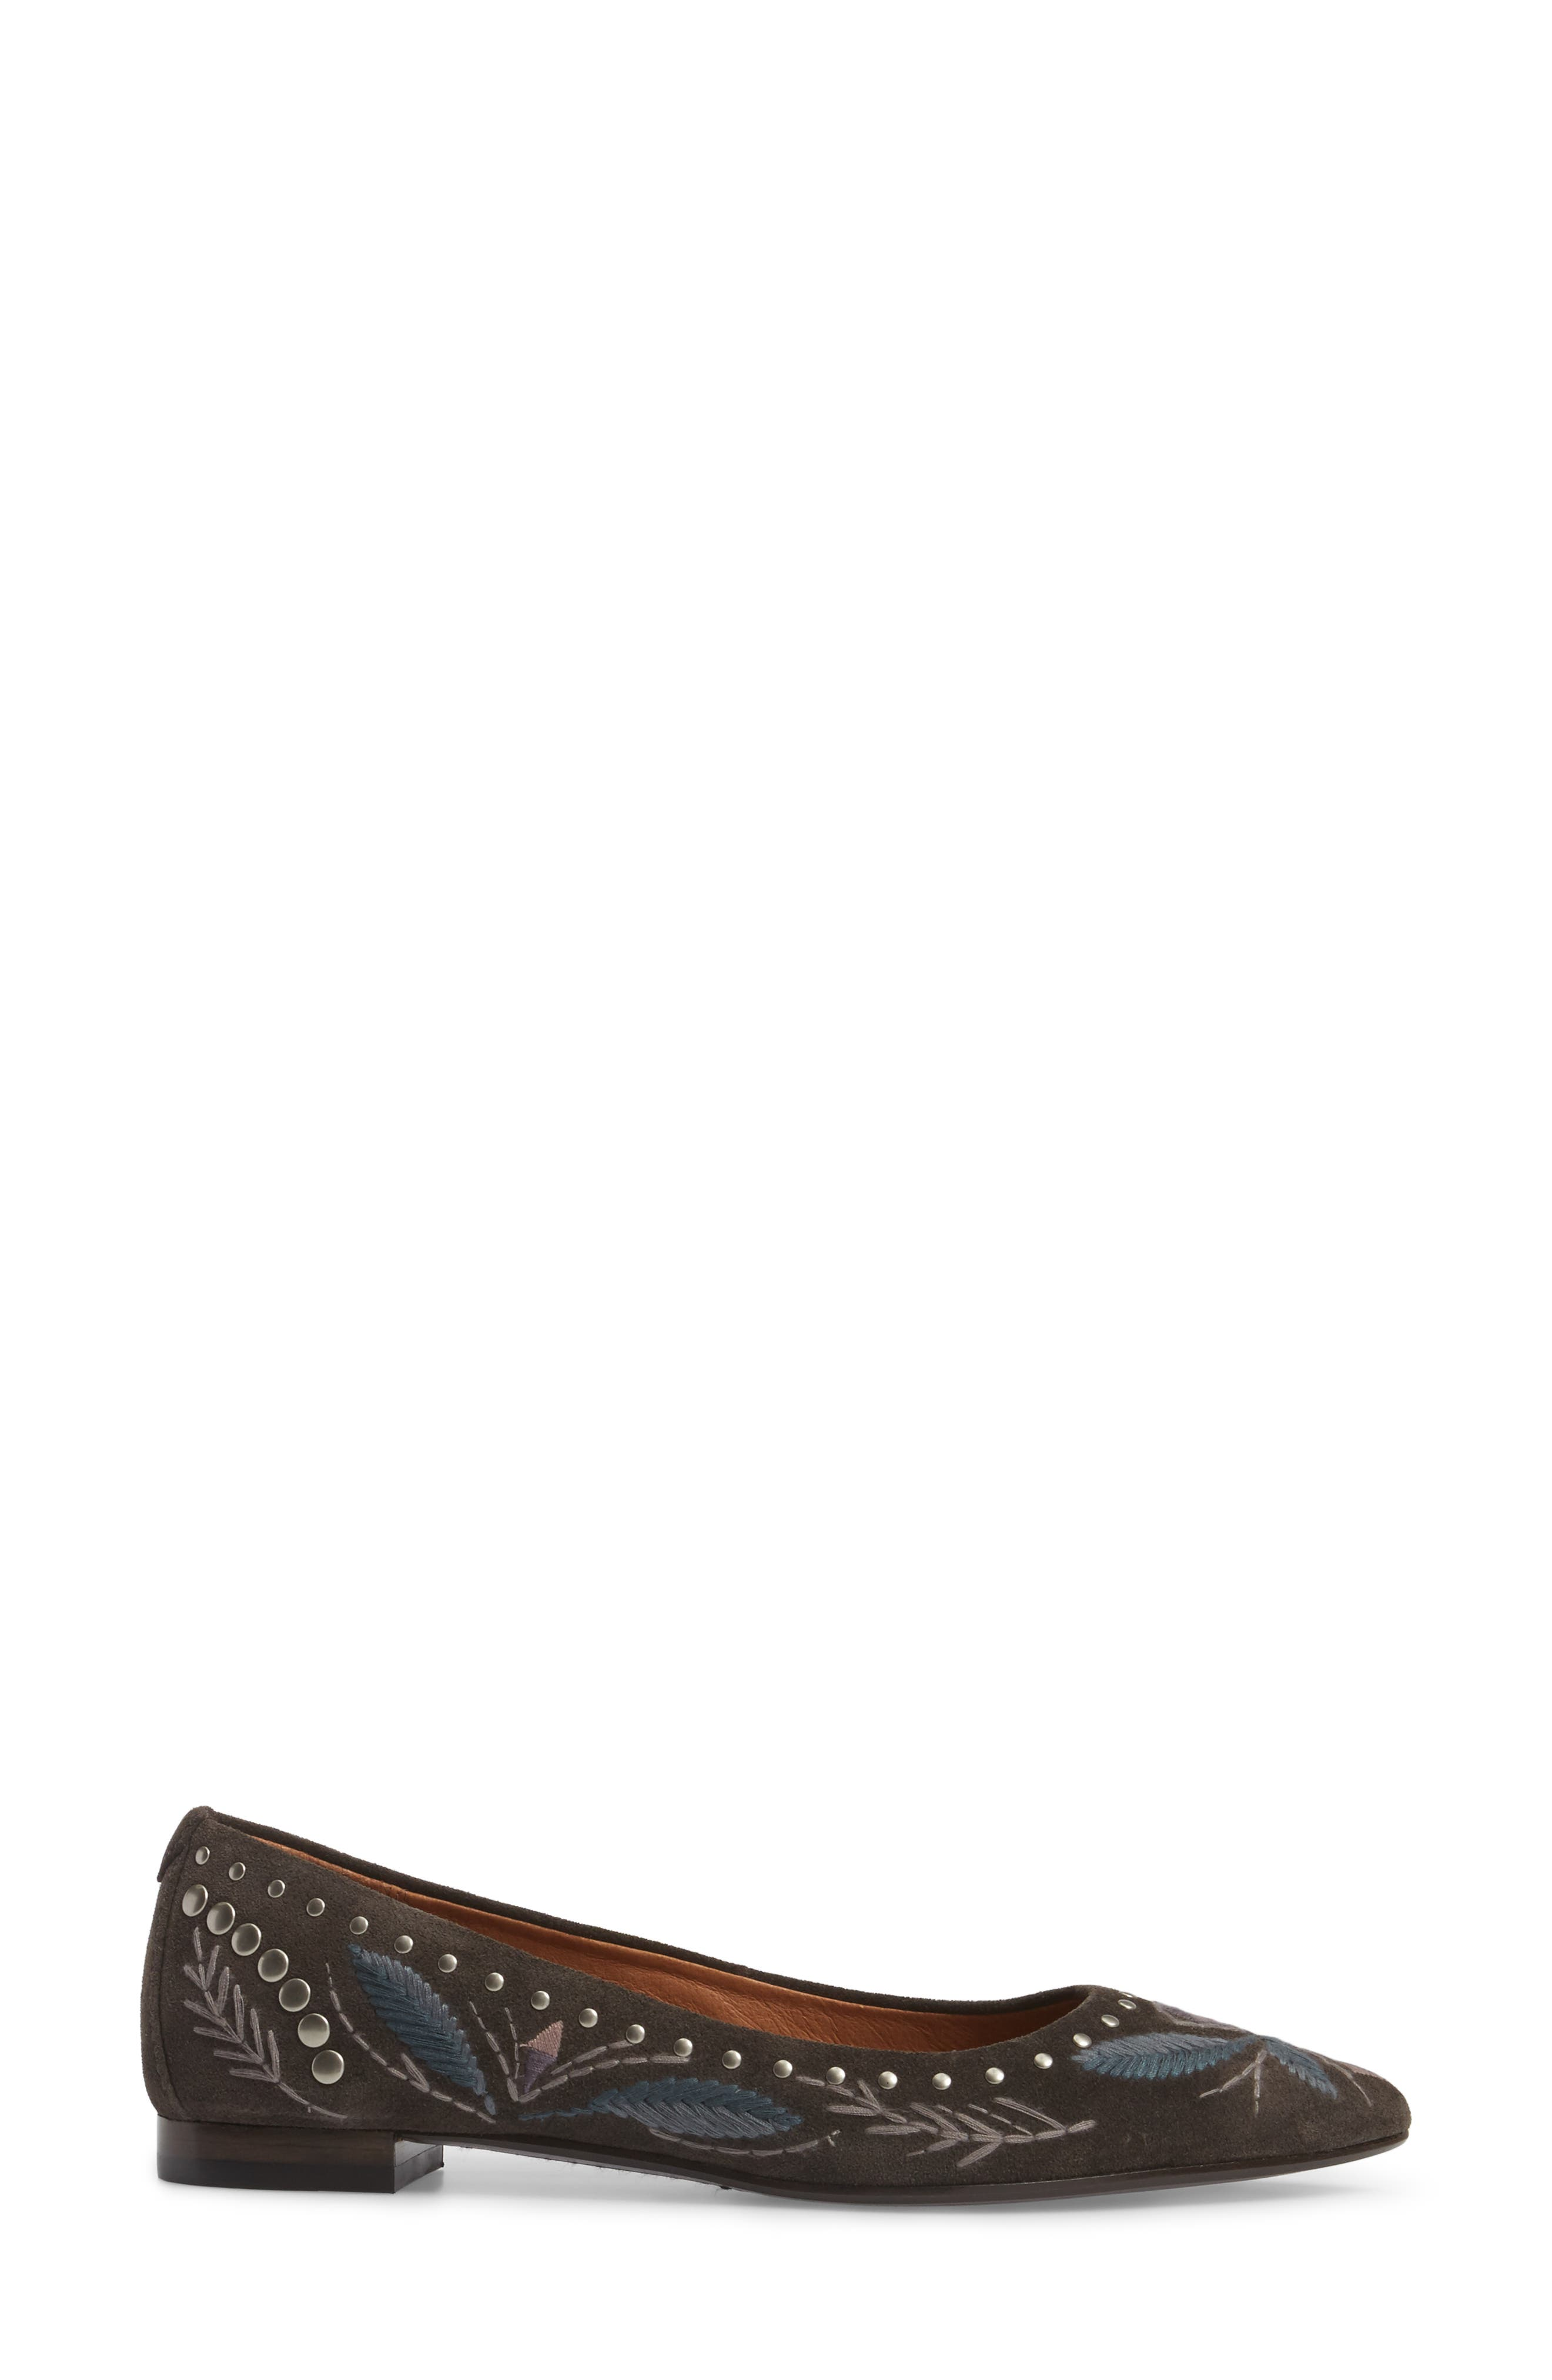 Alternate Image 3  - Frye Sienna Embroidered Ballet Flat (Women)